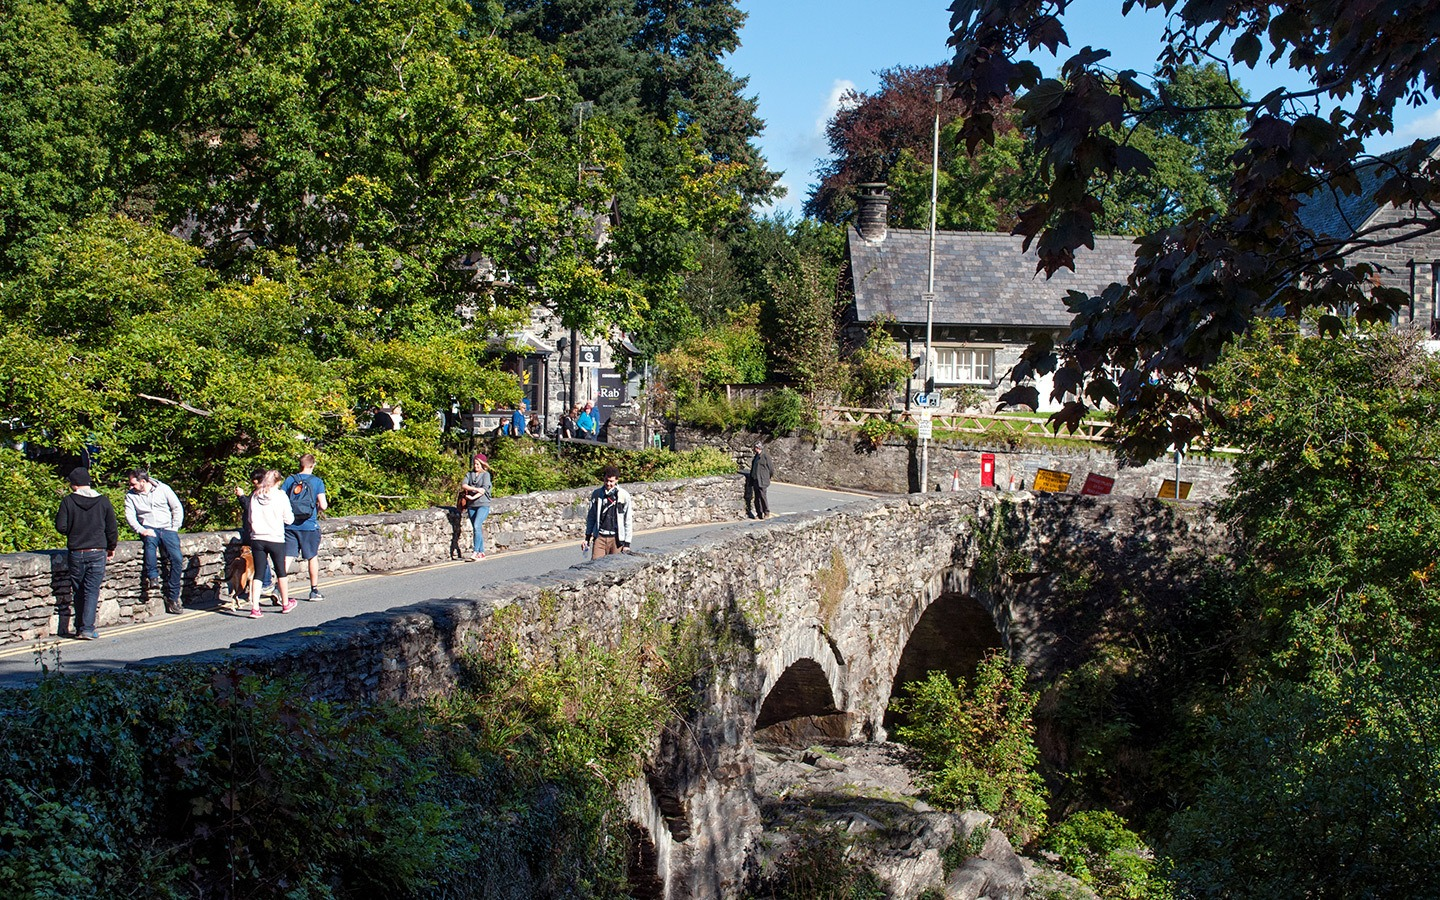 The Miner's Bridge in Snowdonia's Betws-y-Coed